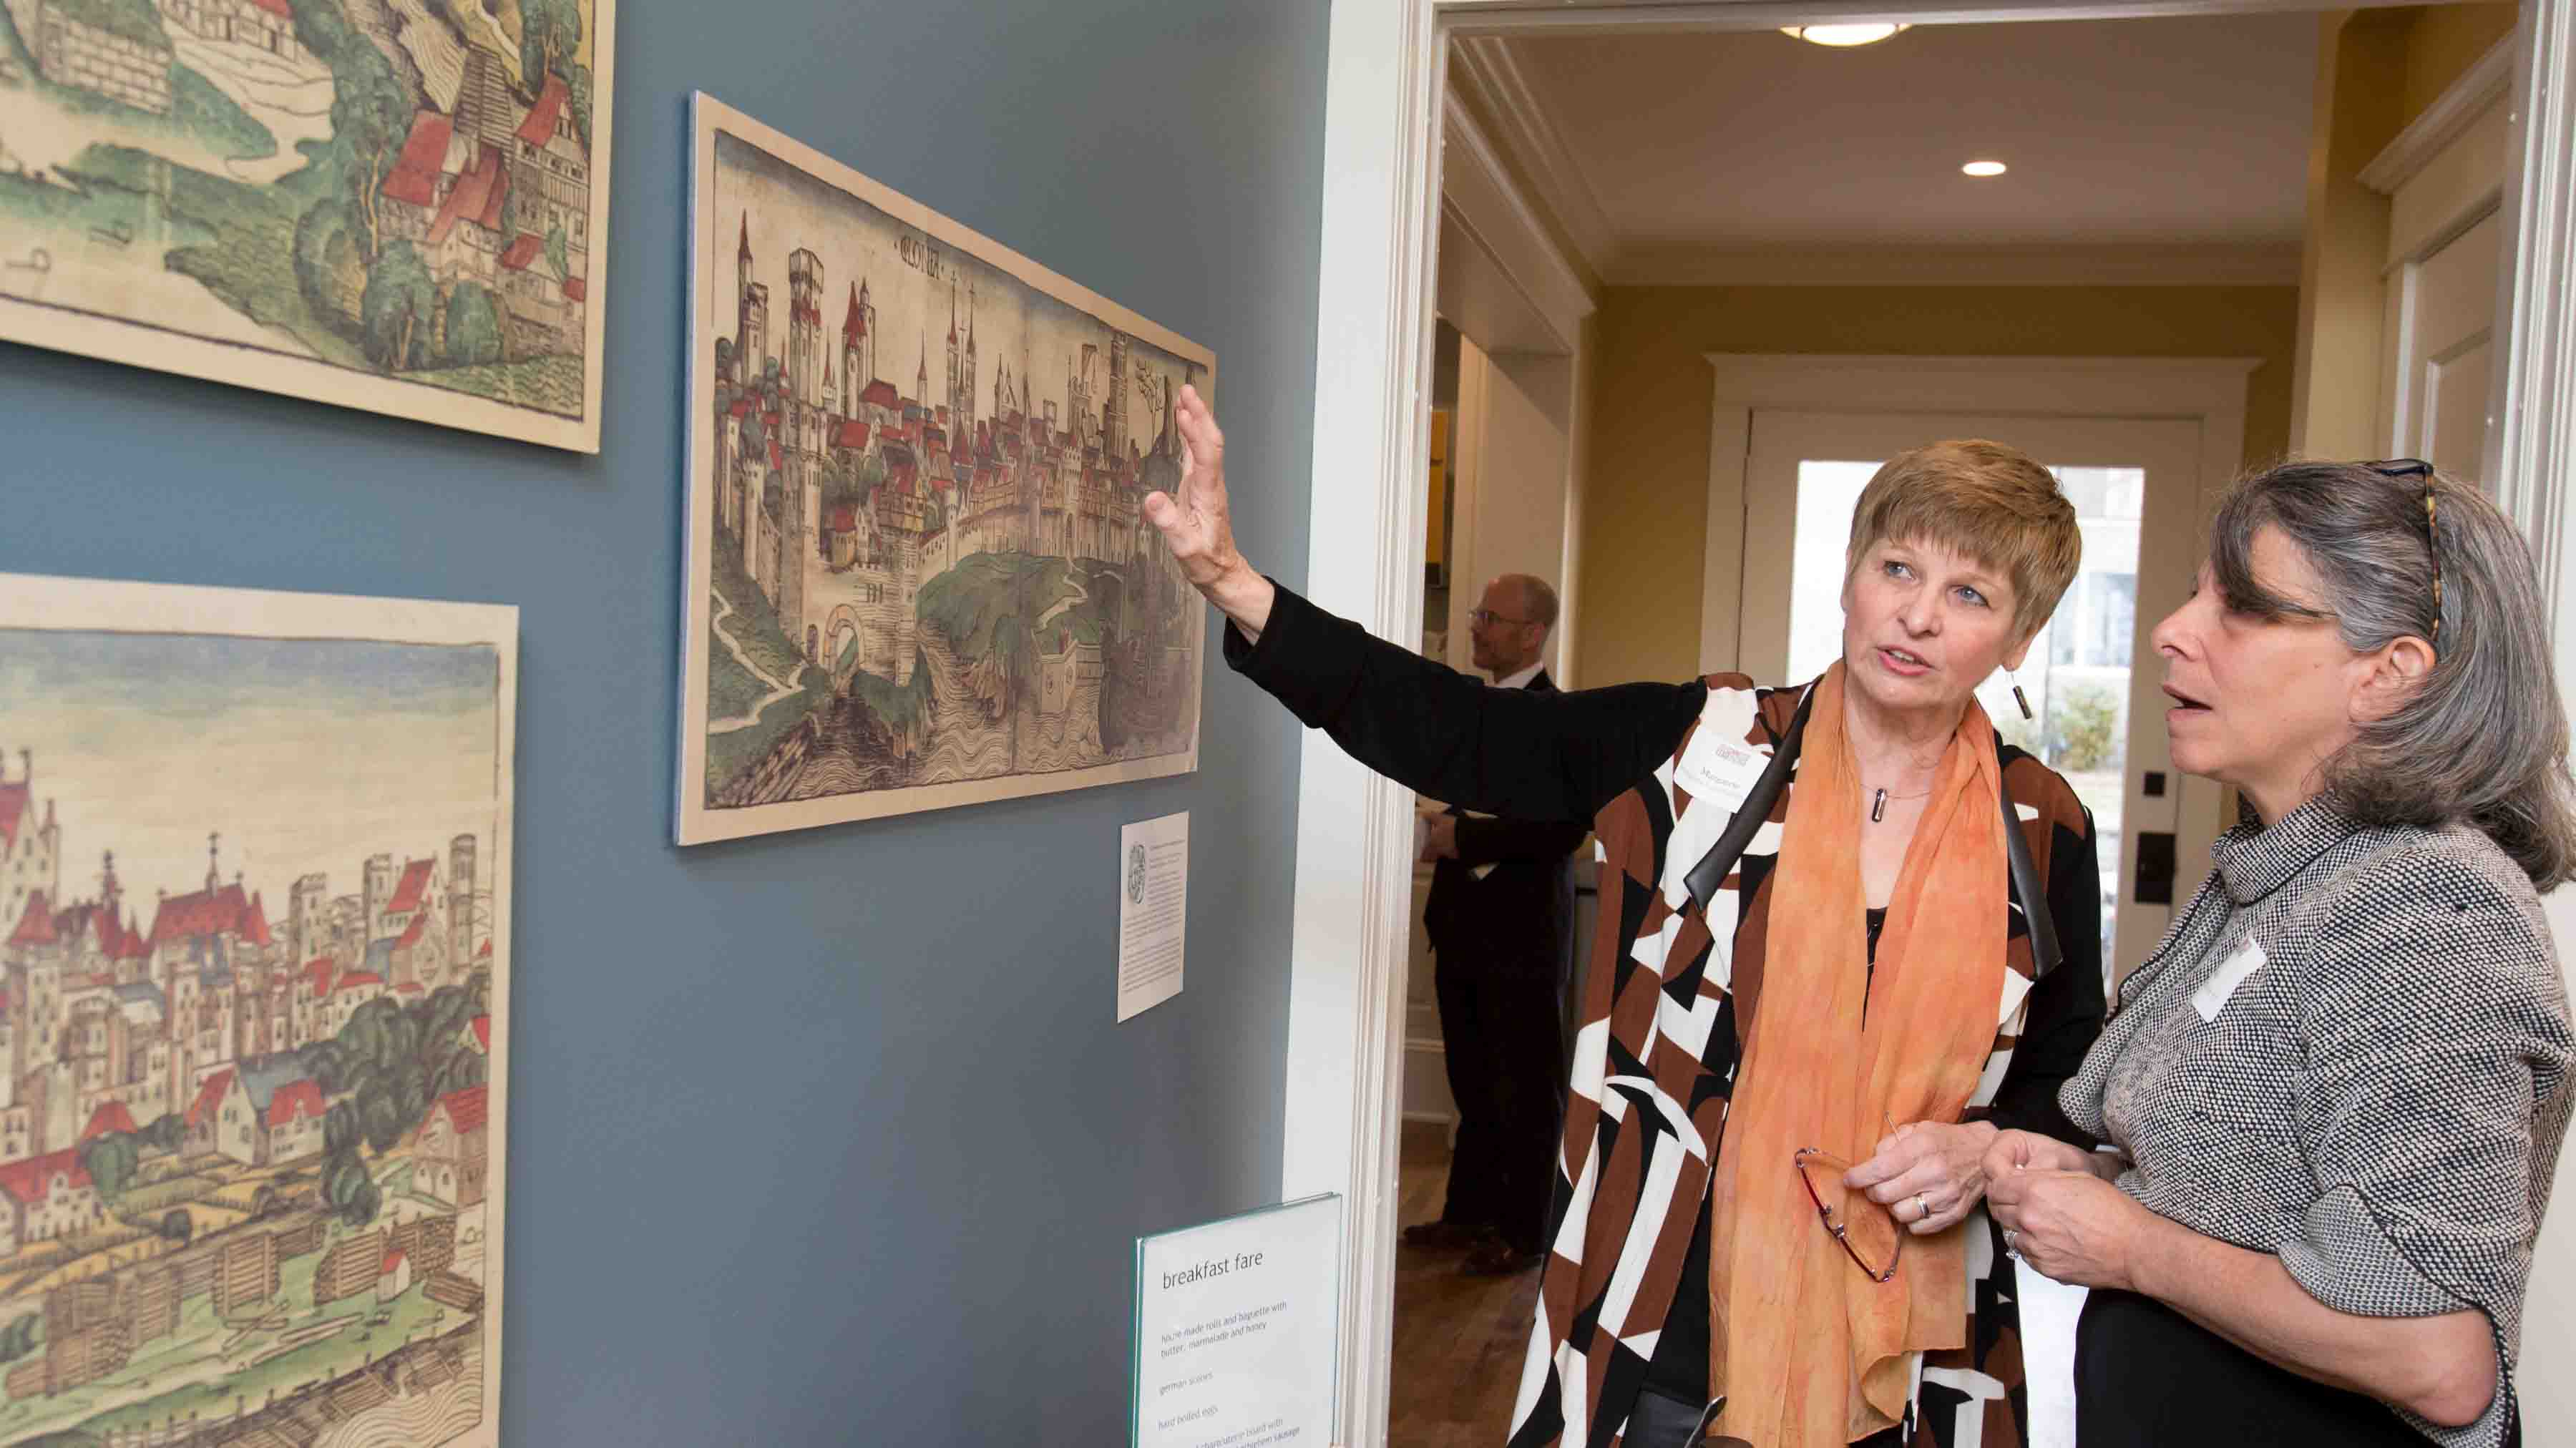 Margarete Lamb-Faffelberger and Leslie Muhlfelder look at art during the dedication of the Max Kade Center for German Studies and Visiting Scholars